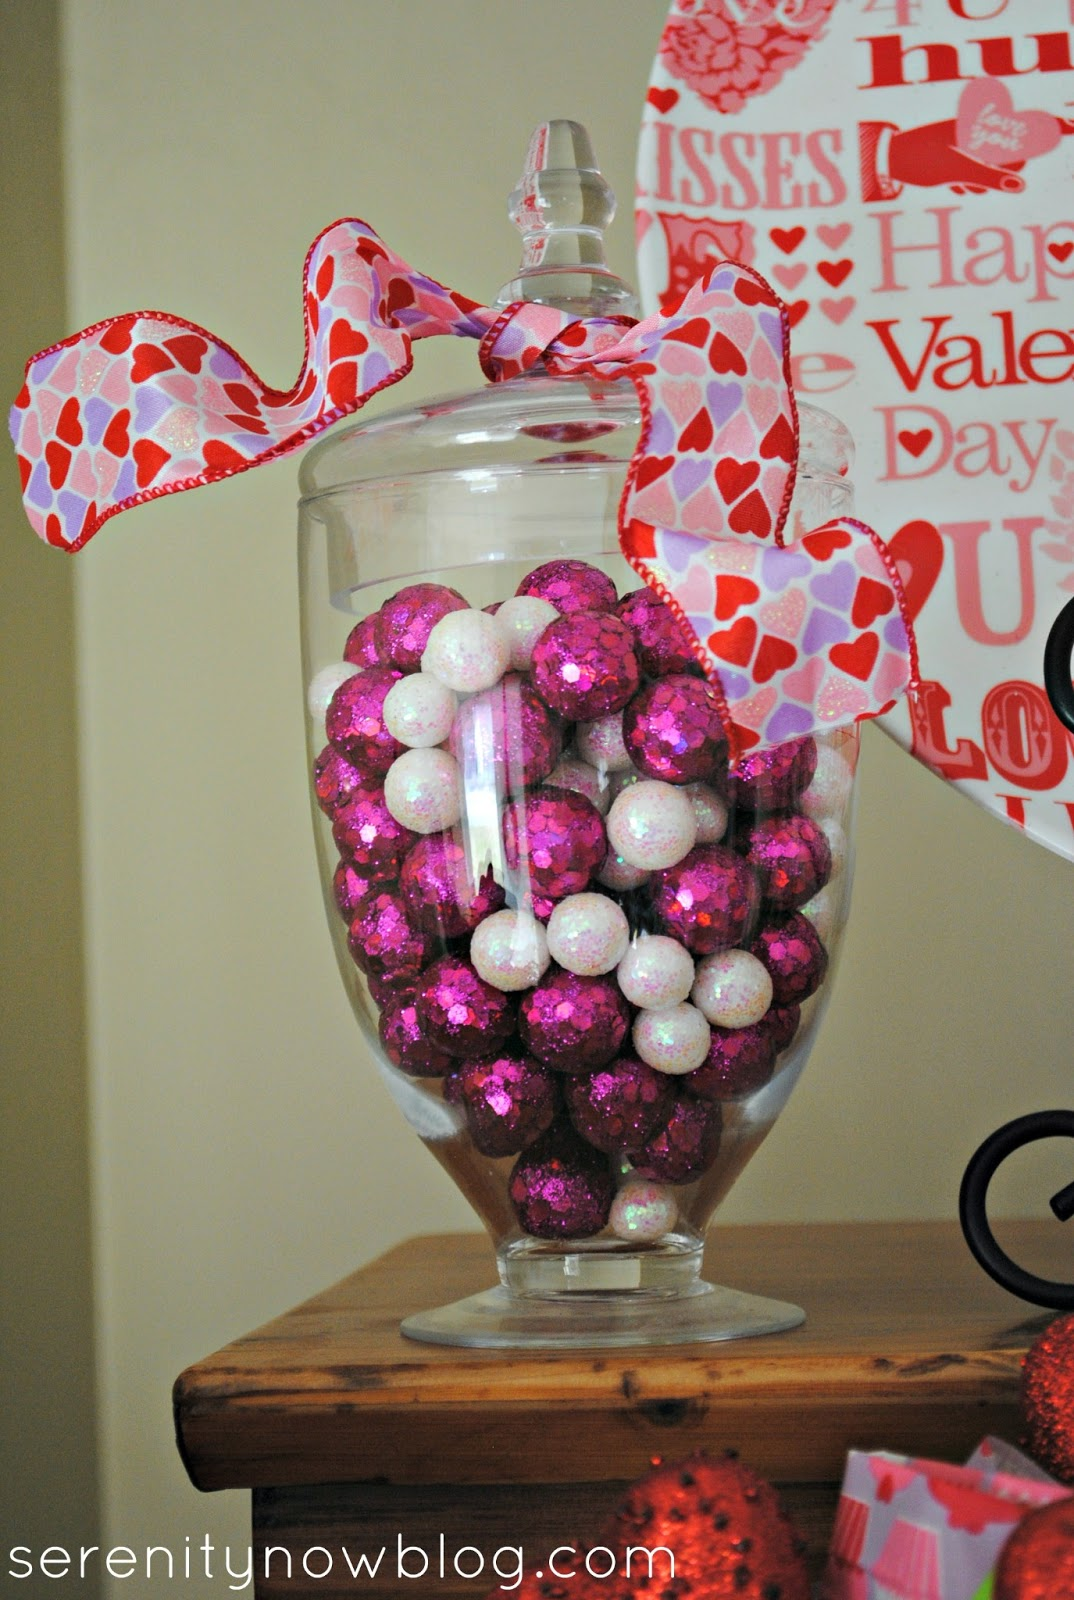 decorations decor diy make a magical ideas s text to day valentines valentine mess v